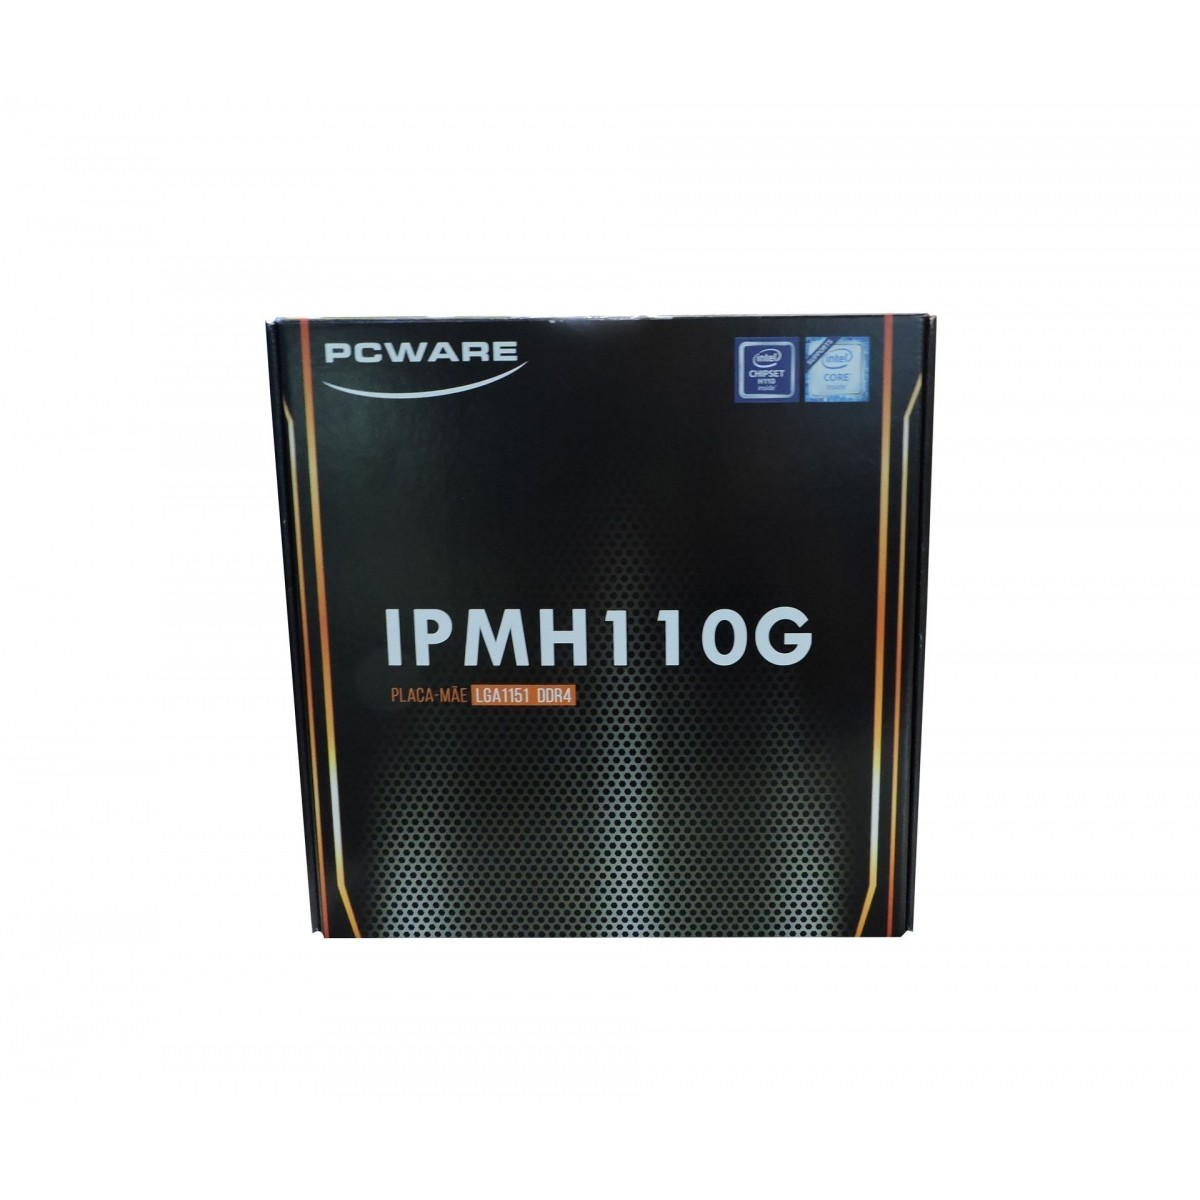 Placa Mãe PC-WARE IPMH110G P/ Intel Socket 1151, Chipset Intel H110, 2x DDR4 (Max 32GB), VGA/HDMI, LAN 10/100/1000, SATA 3, USB 3.0, PCI Express 16x / x1